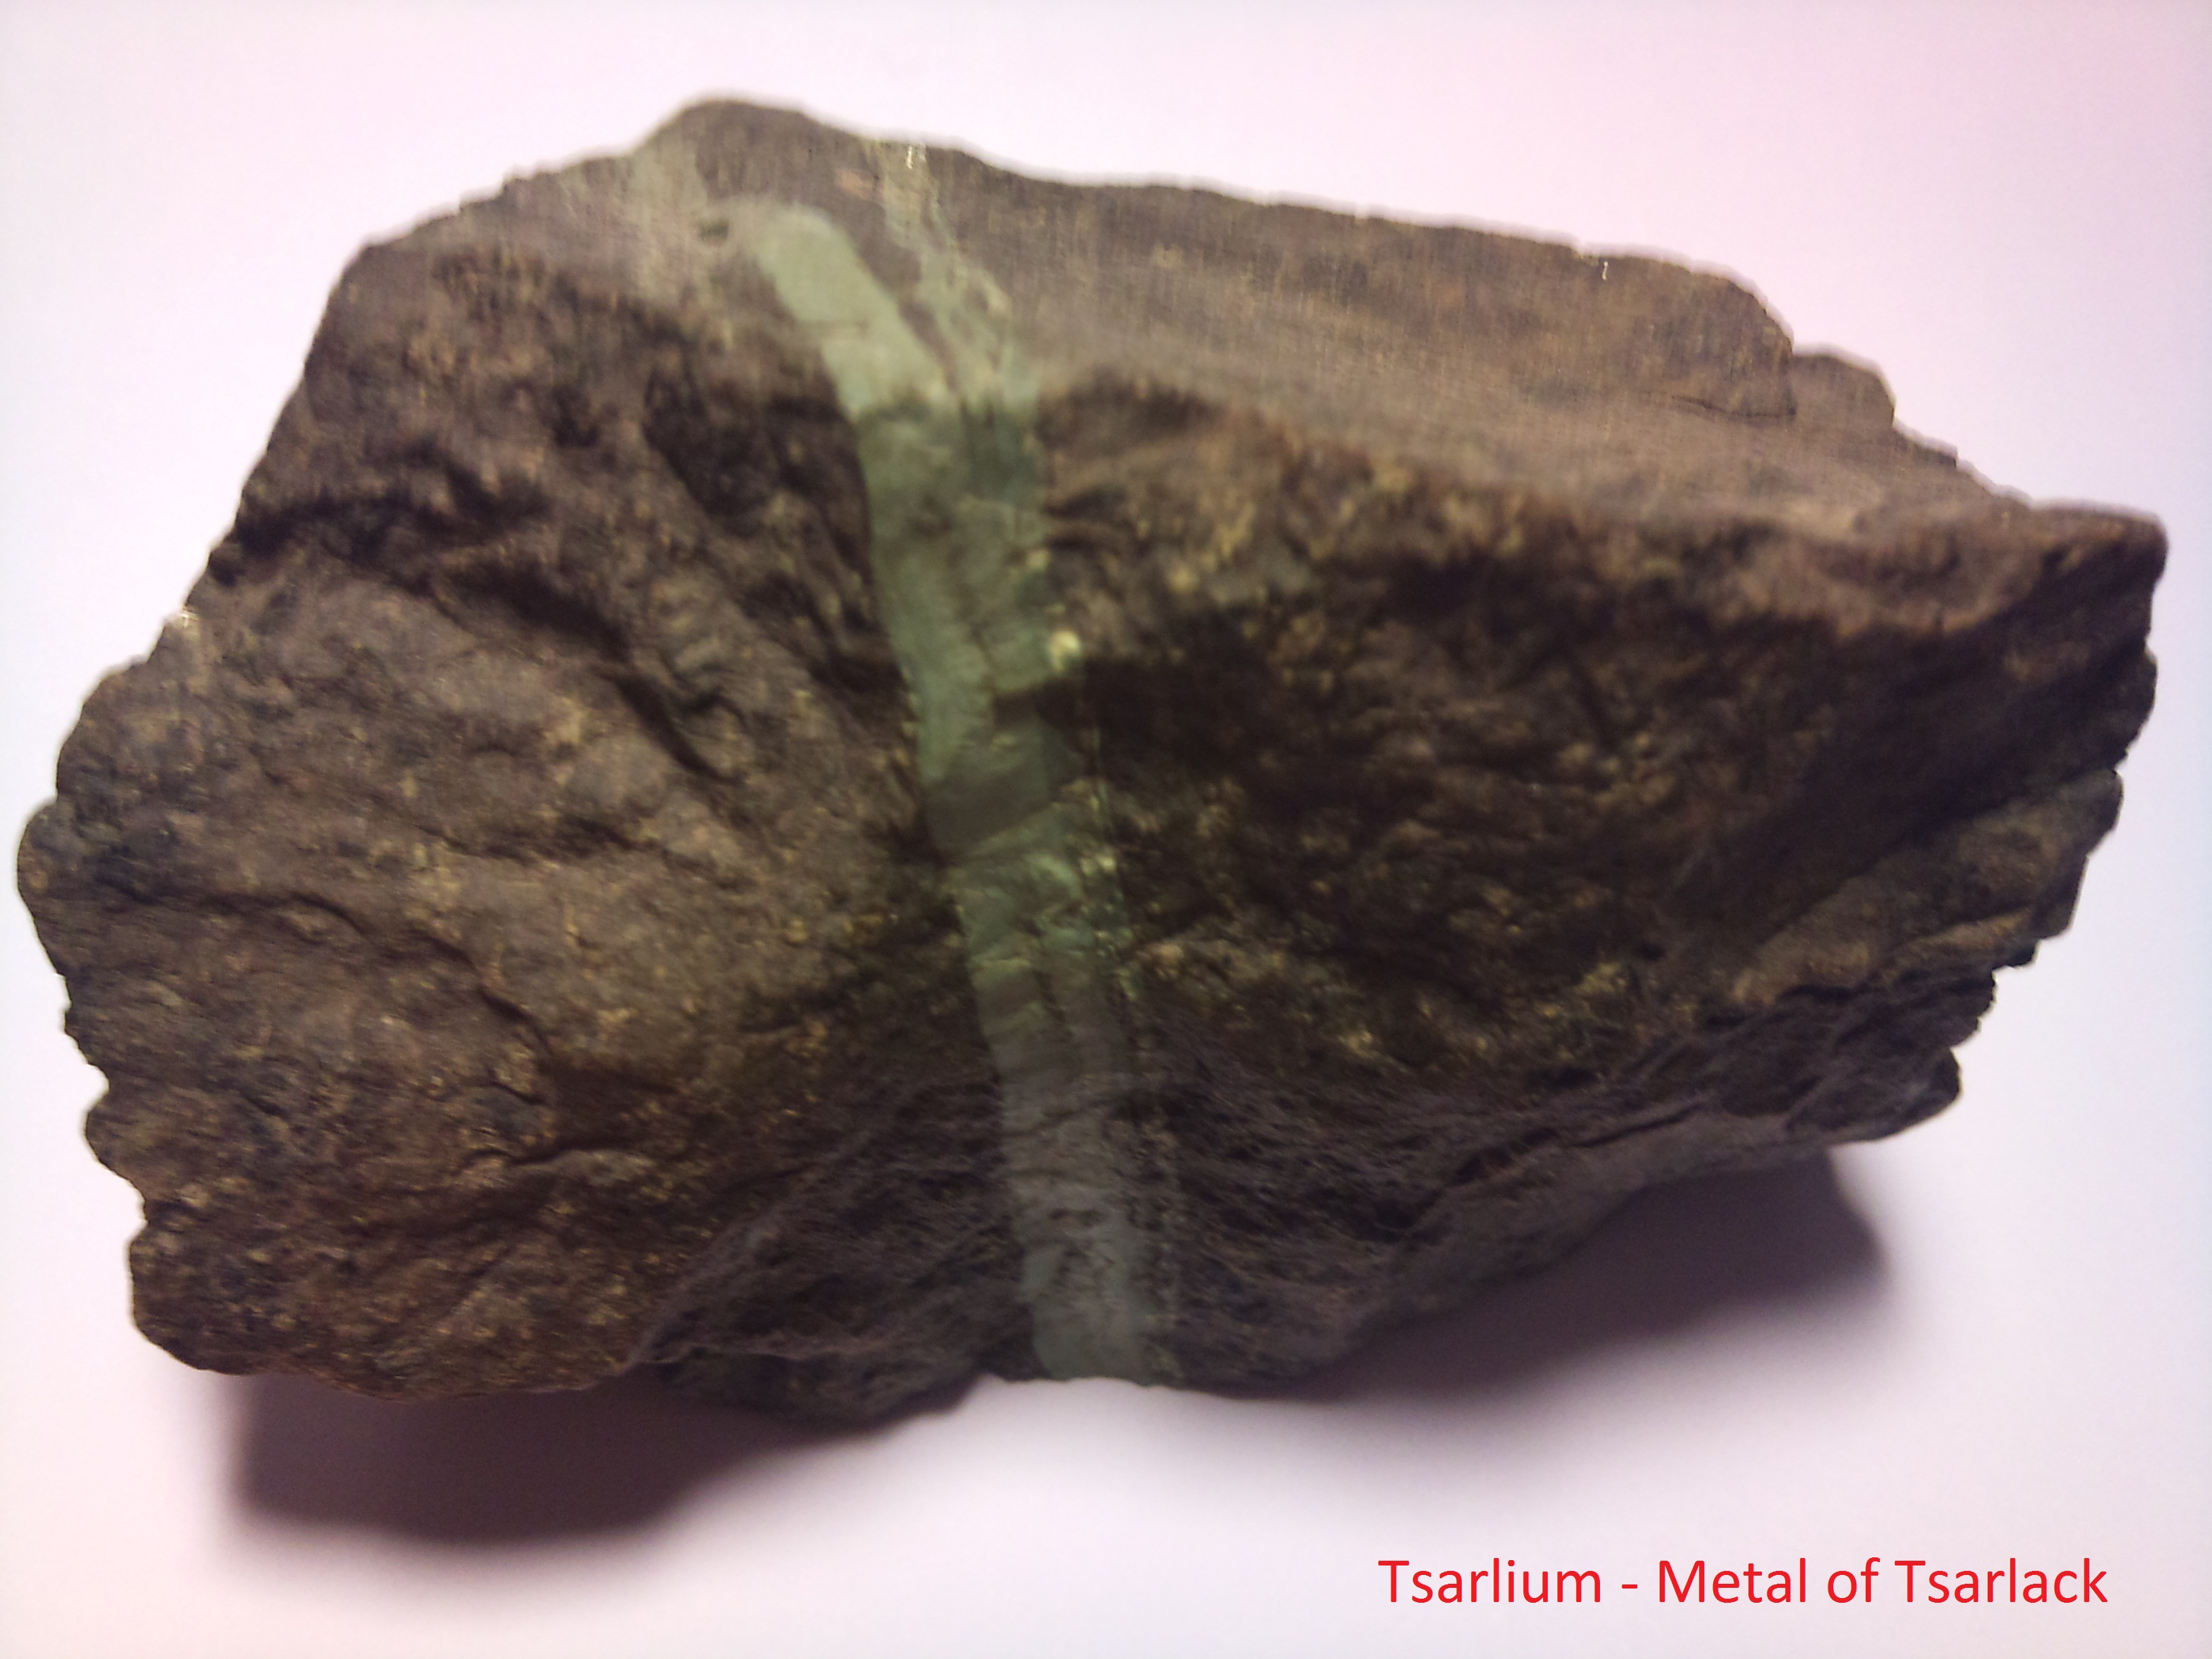 This Picture of Tsarlium is based solely upon a fictional account of a metal element.